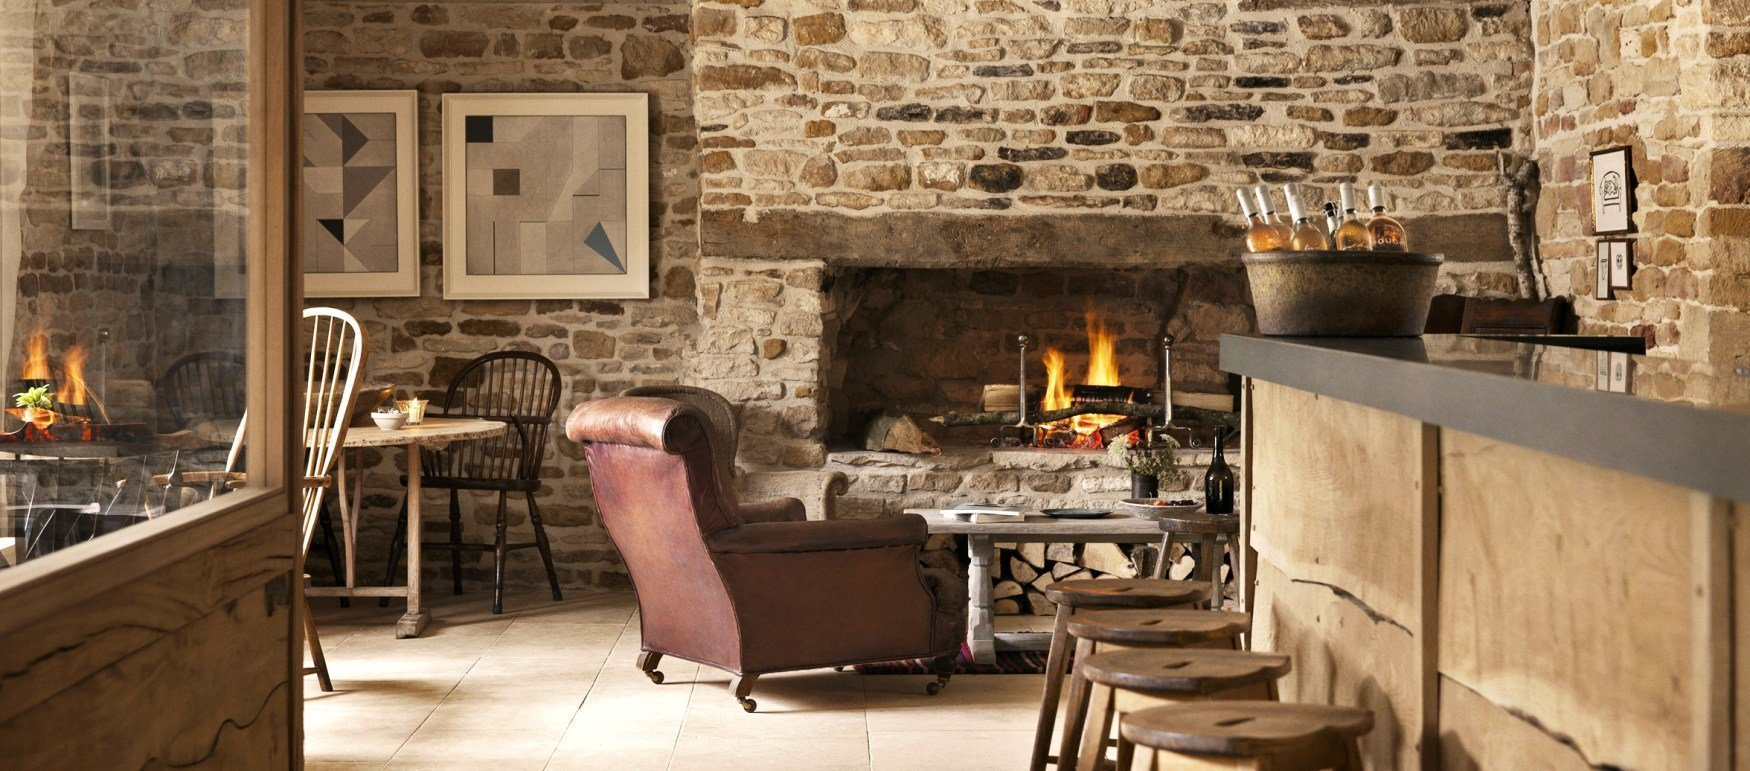 The Wild Rabbit, Kingham Pub with Rooms in Oxfordshire 02